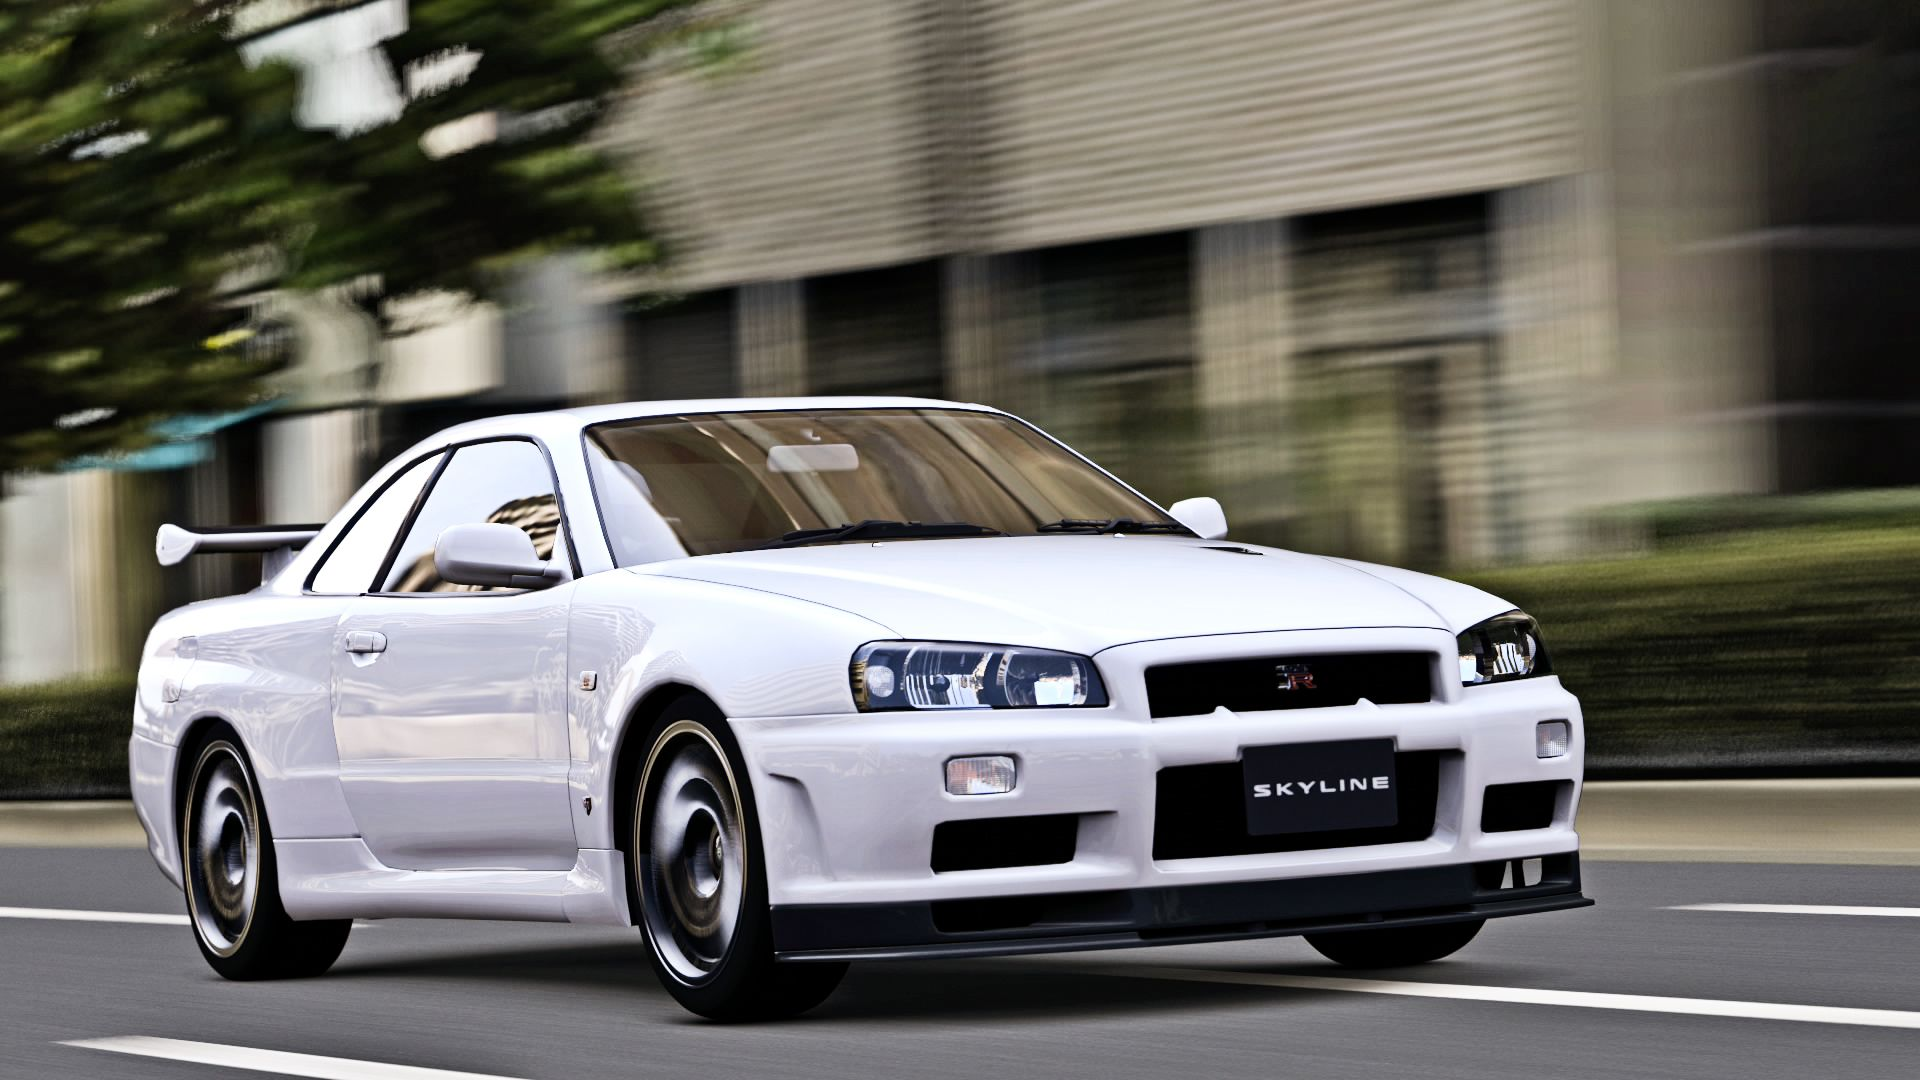 Bon Undefined Nissan Skyline GTR R34 Wallpapers (51 Wallpapers) | Adorable  Wallpapers